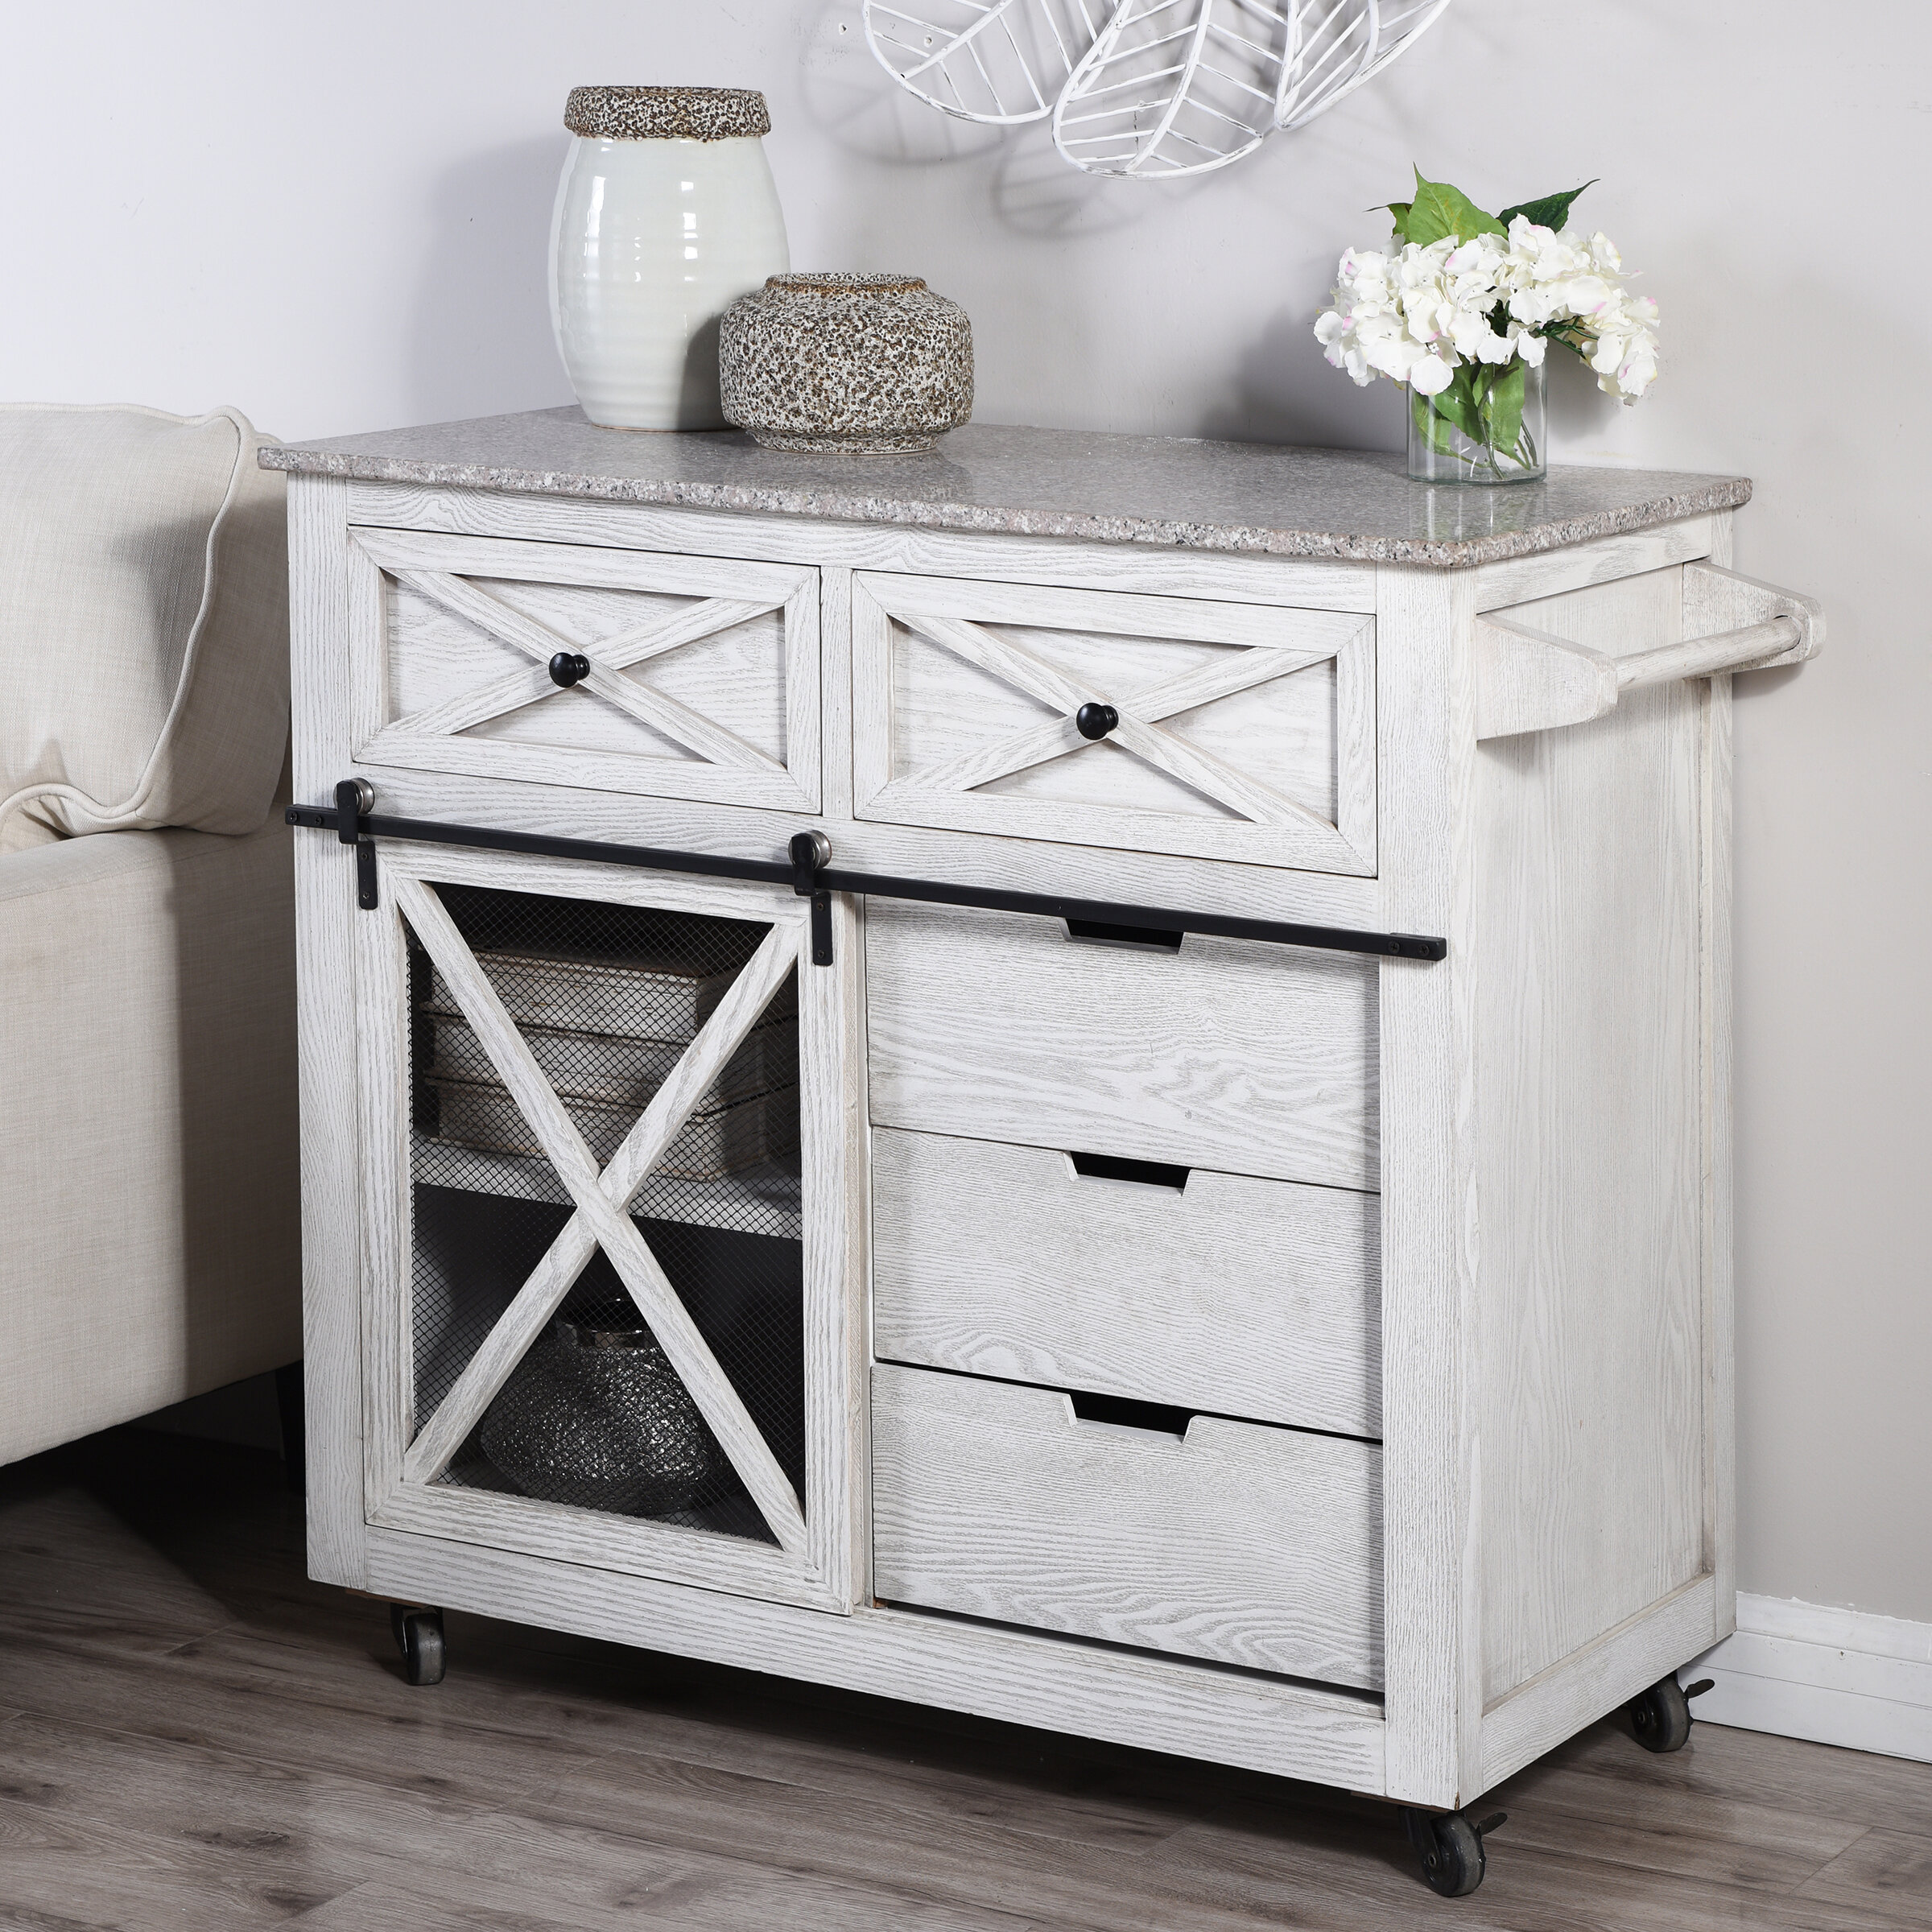 Gracie Oaks Fazio 36 50 Kitchen Island With Solid Wood Top And Locking Wheels Reviews Wayfair